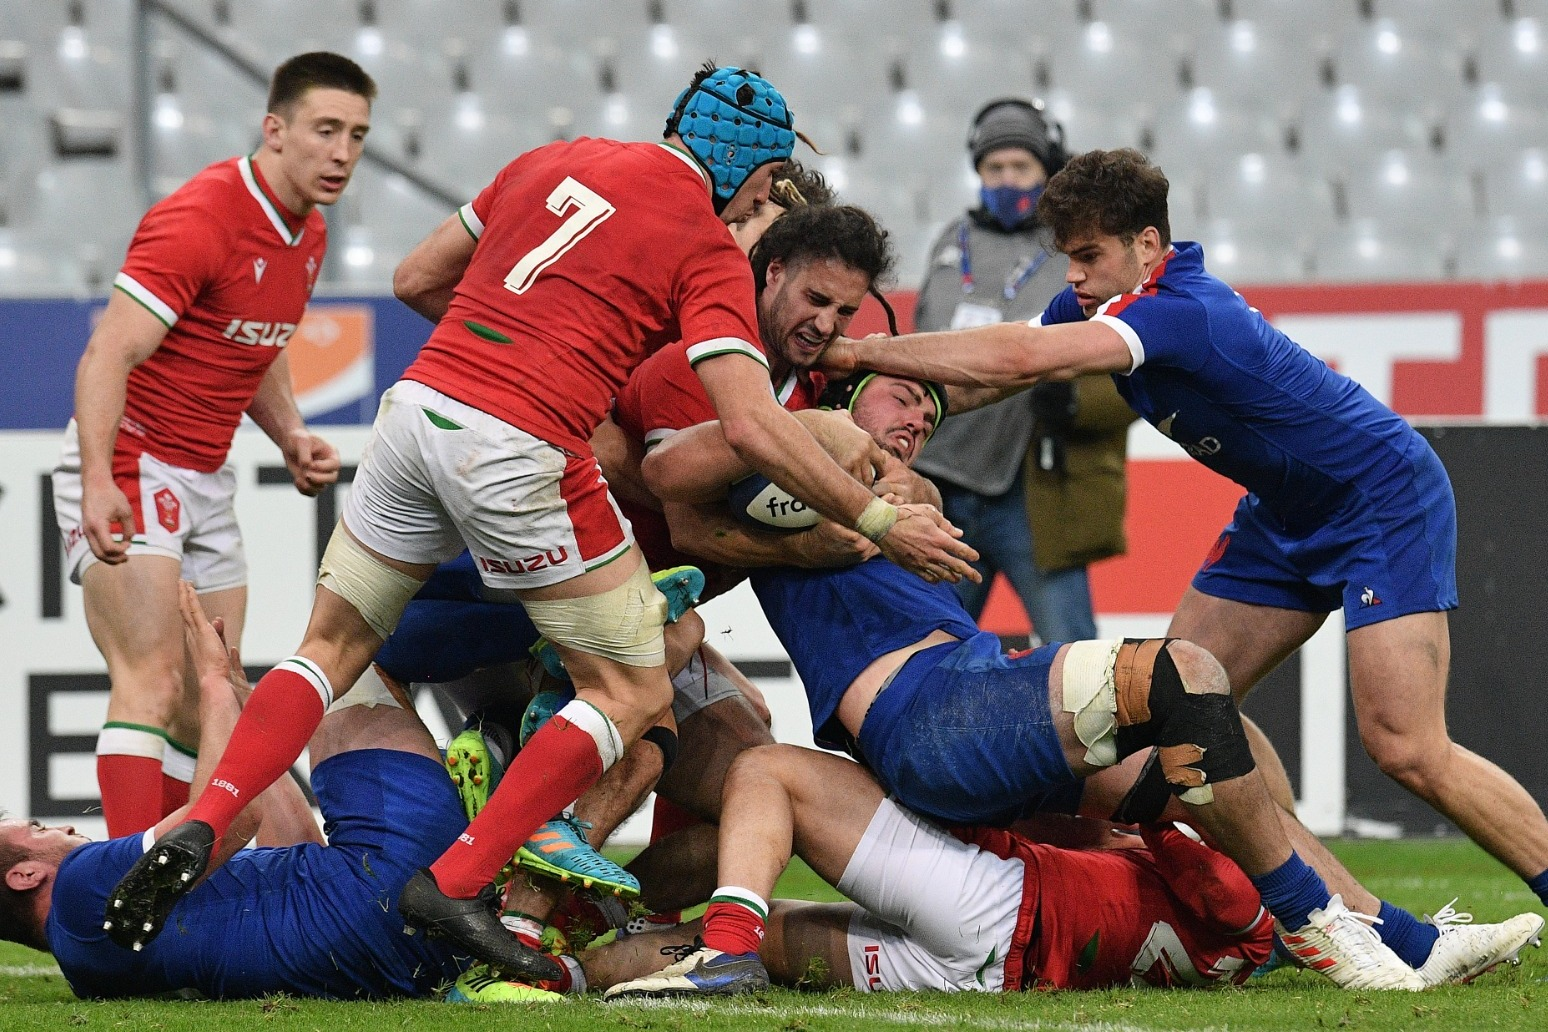 Wayne Pivac says Wales left 'numb' after late France try denied them Grand Slam